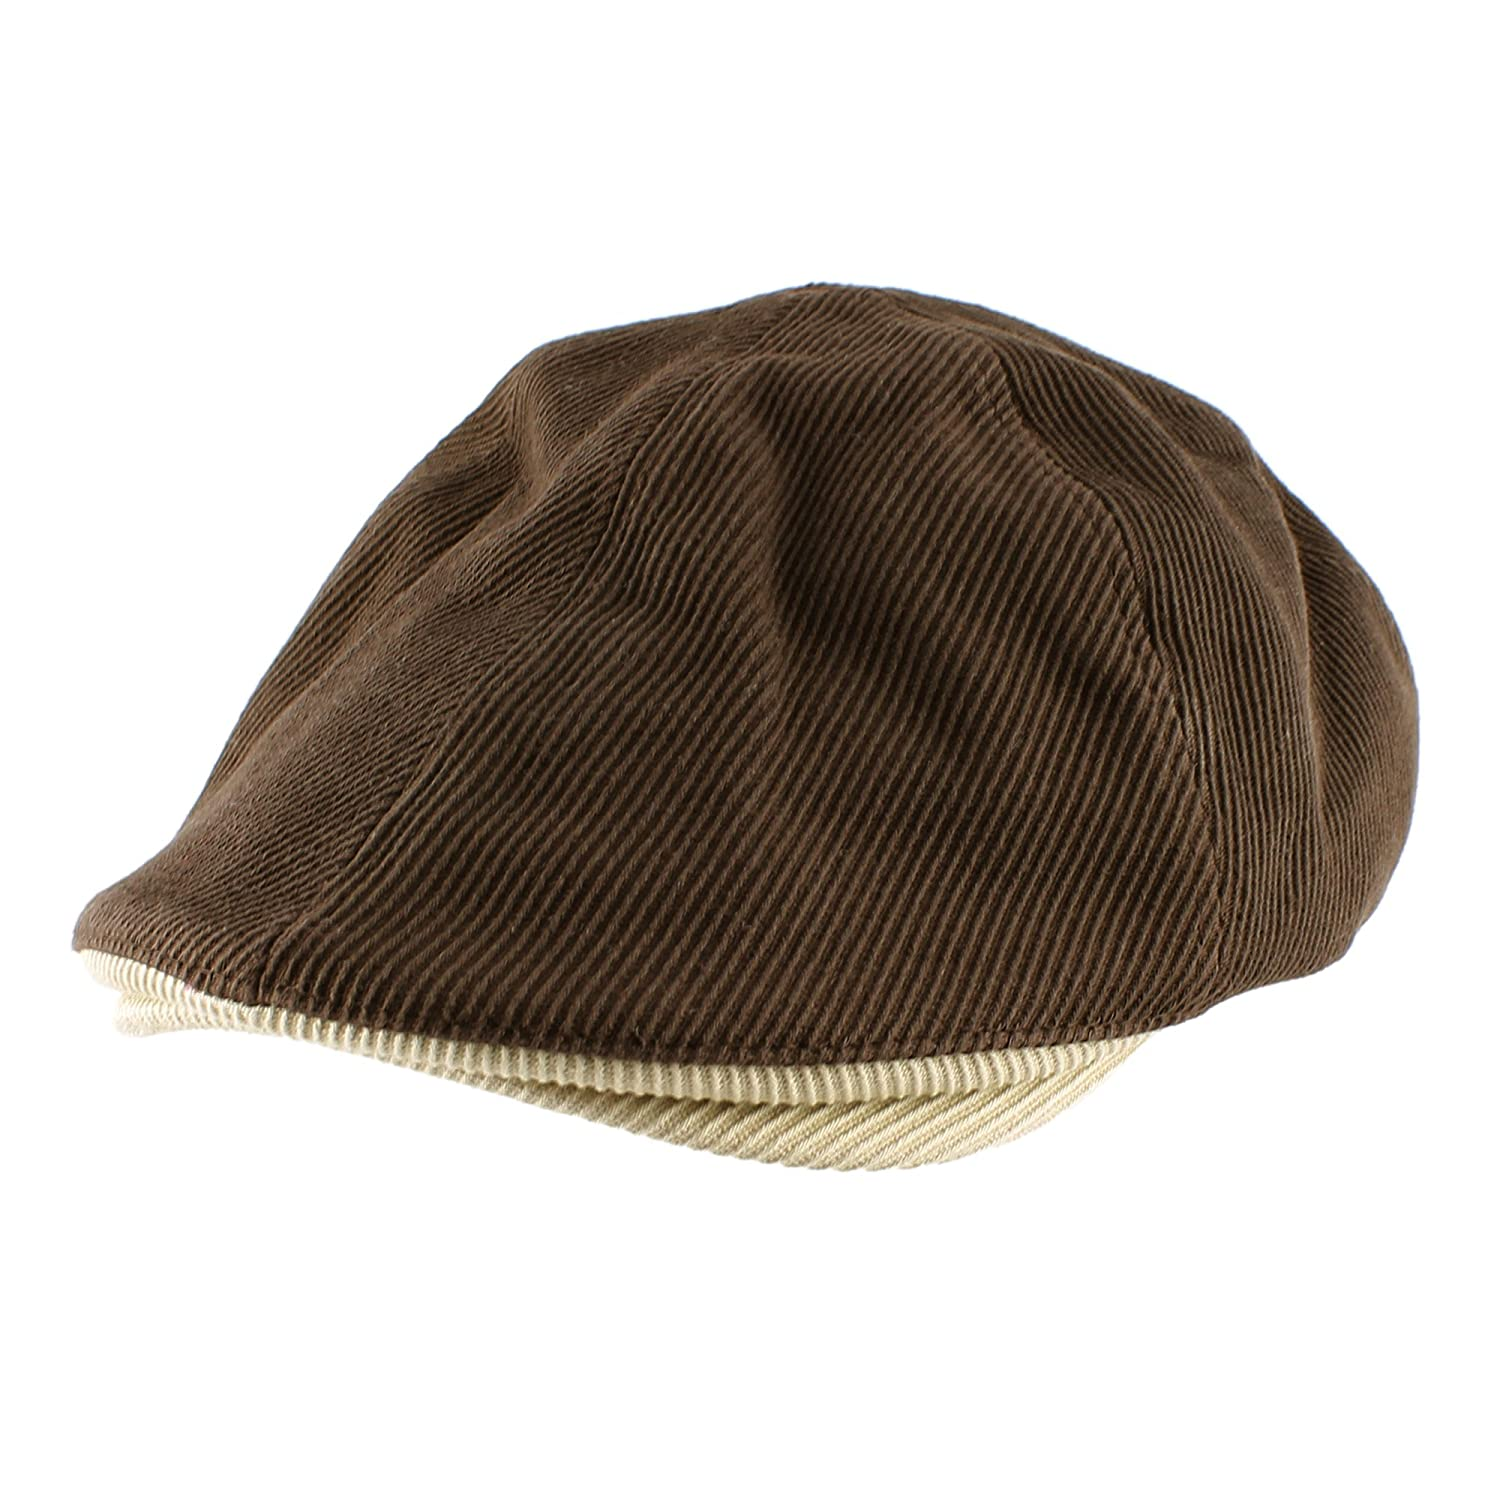 4211f48f510 Morehats Corduroy Cotton Flat Cap Cabbie Hat Gatsby Ivy Irish Hunting  Newsboy Hunting Beret - Brown at Amazon Women s Clothing store